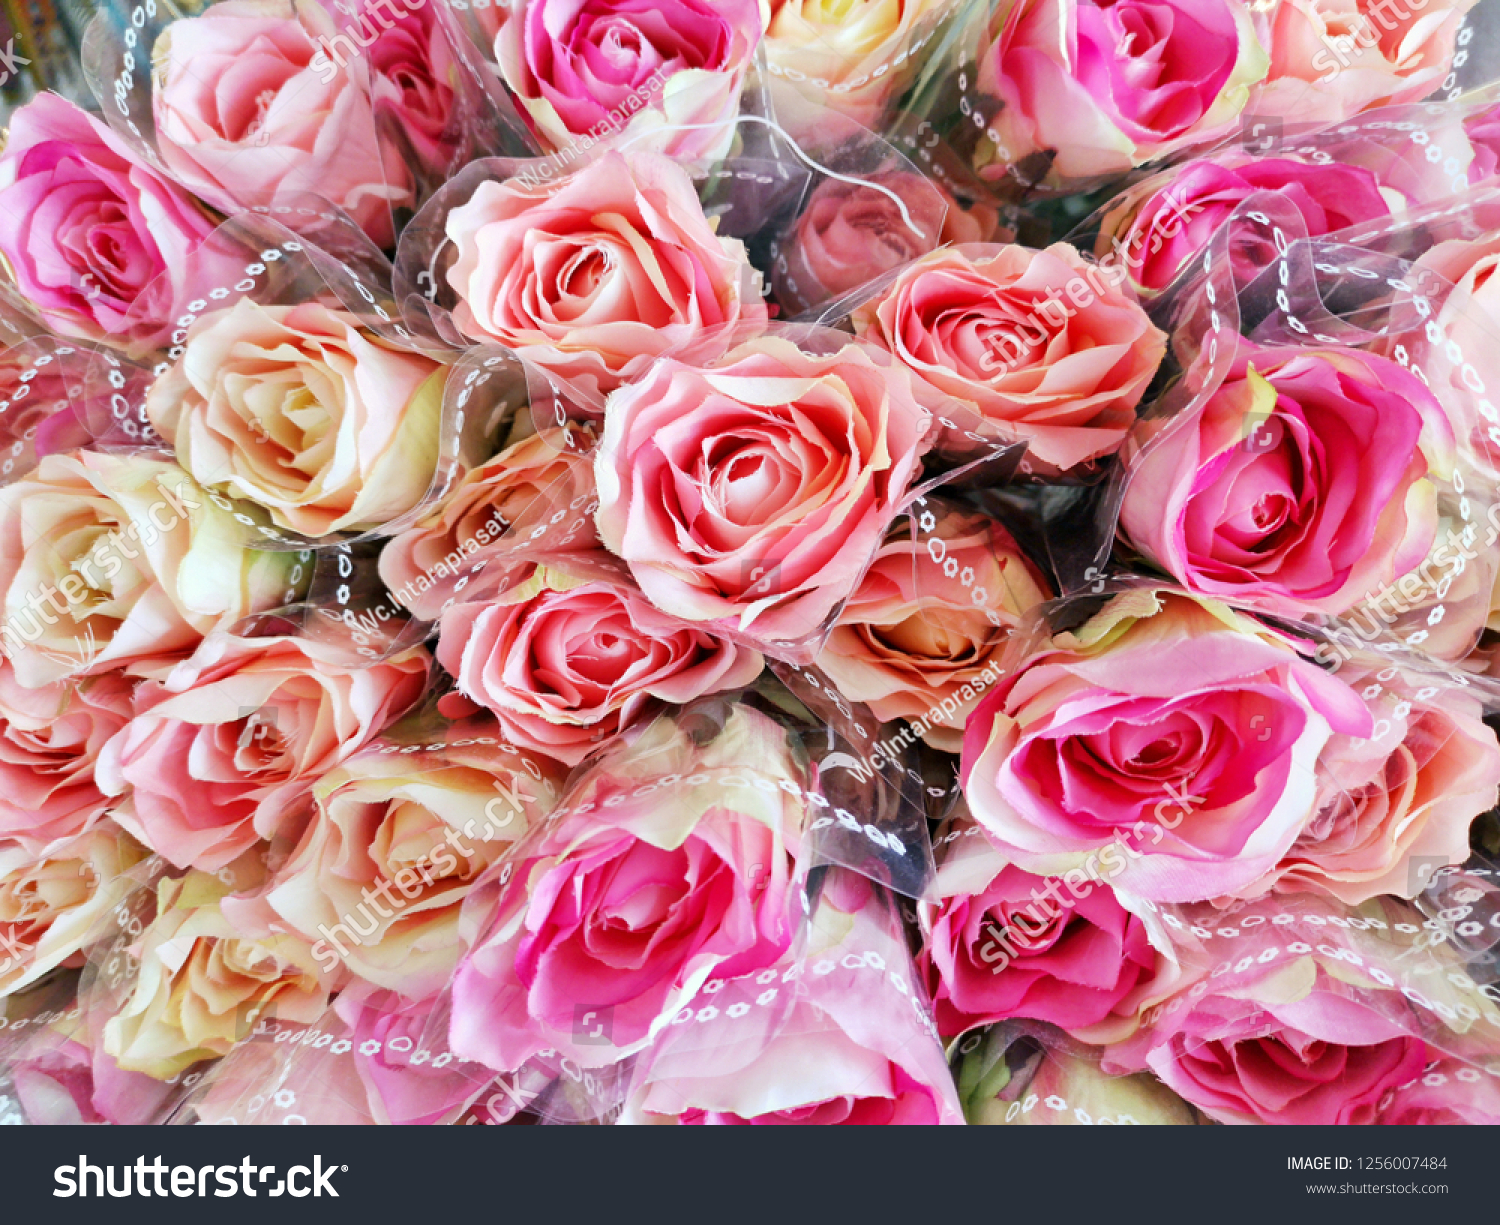 Roses Different Shades Pink Wedding Arrangement Stock Photo Edit Now 1256007484